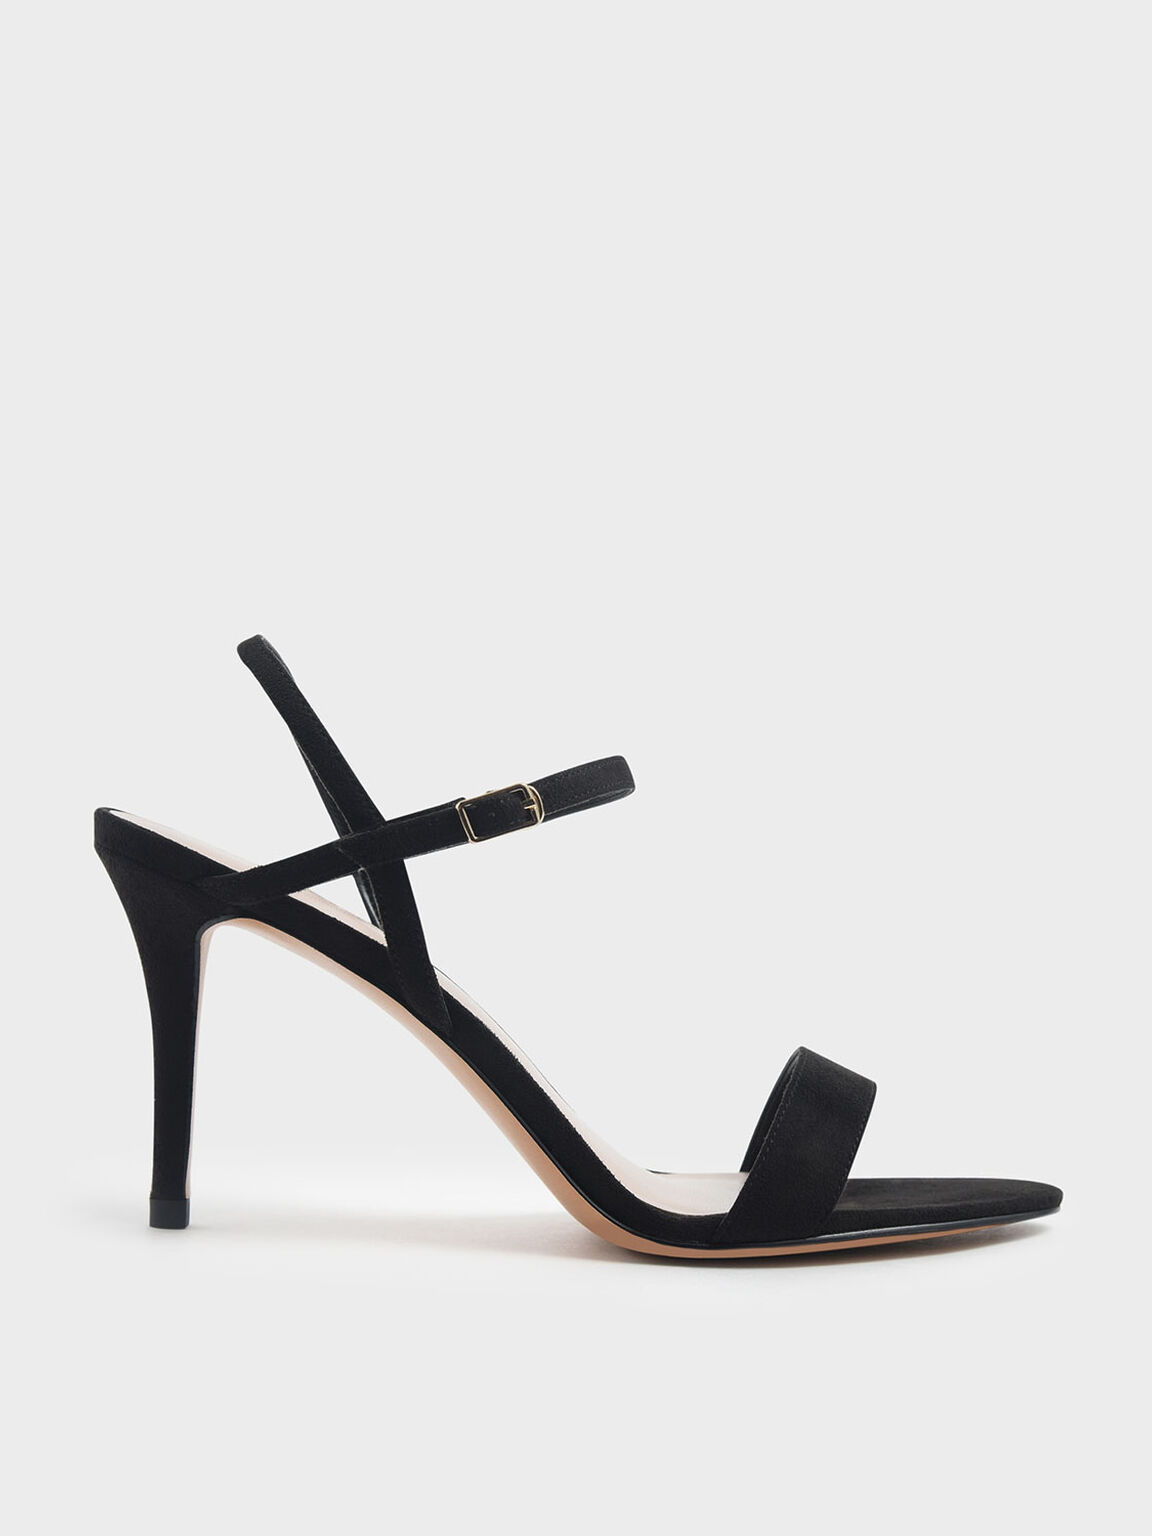 Textured Classic Stiletto Heel Sandals, Black, hi-res